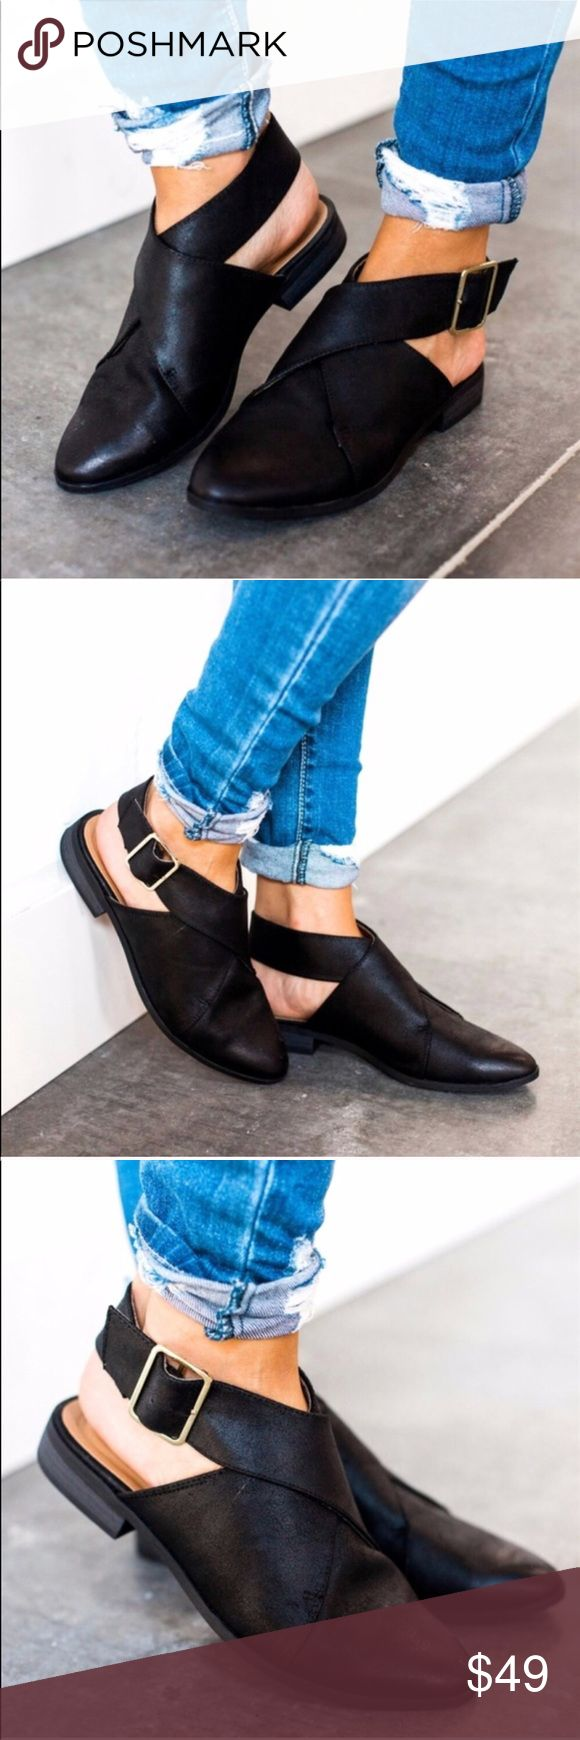 KALEY black vegan leather wrap flat bootie Super low heel flat-booties in black vegan leather  Fits true to size   ✨MAKE AN OFFER✨ WILA Shoes Flats & Loafers